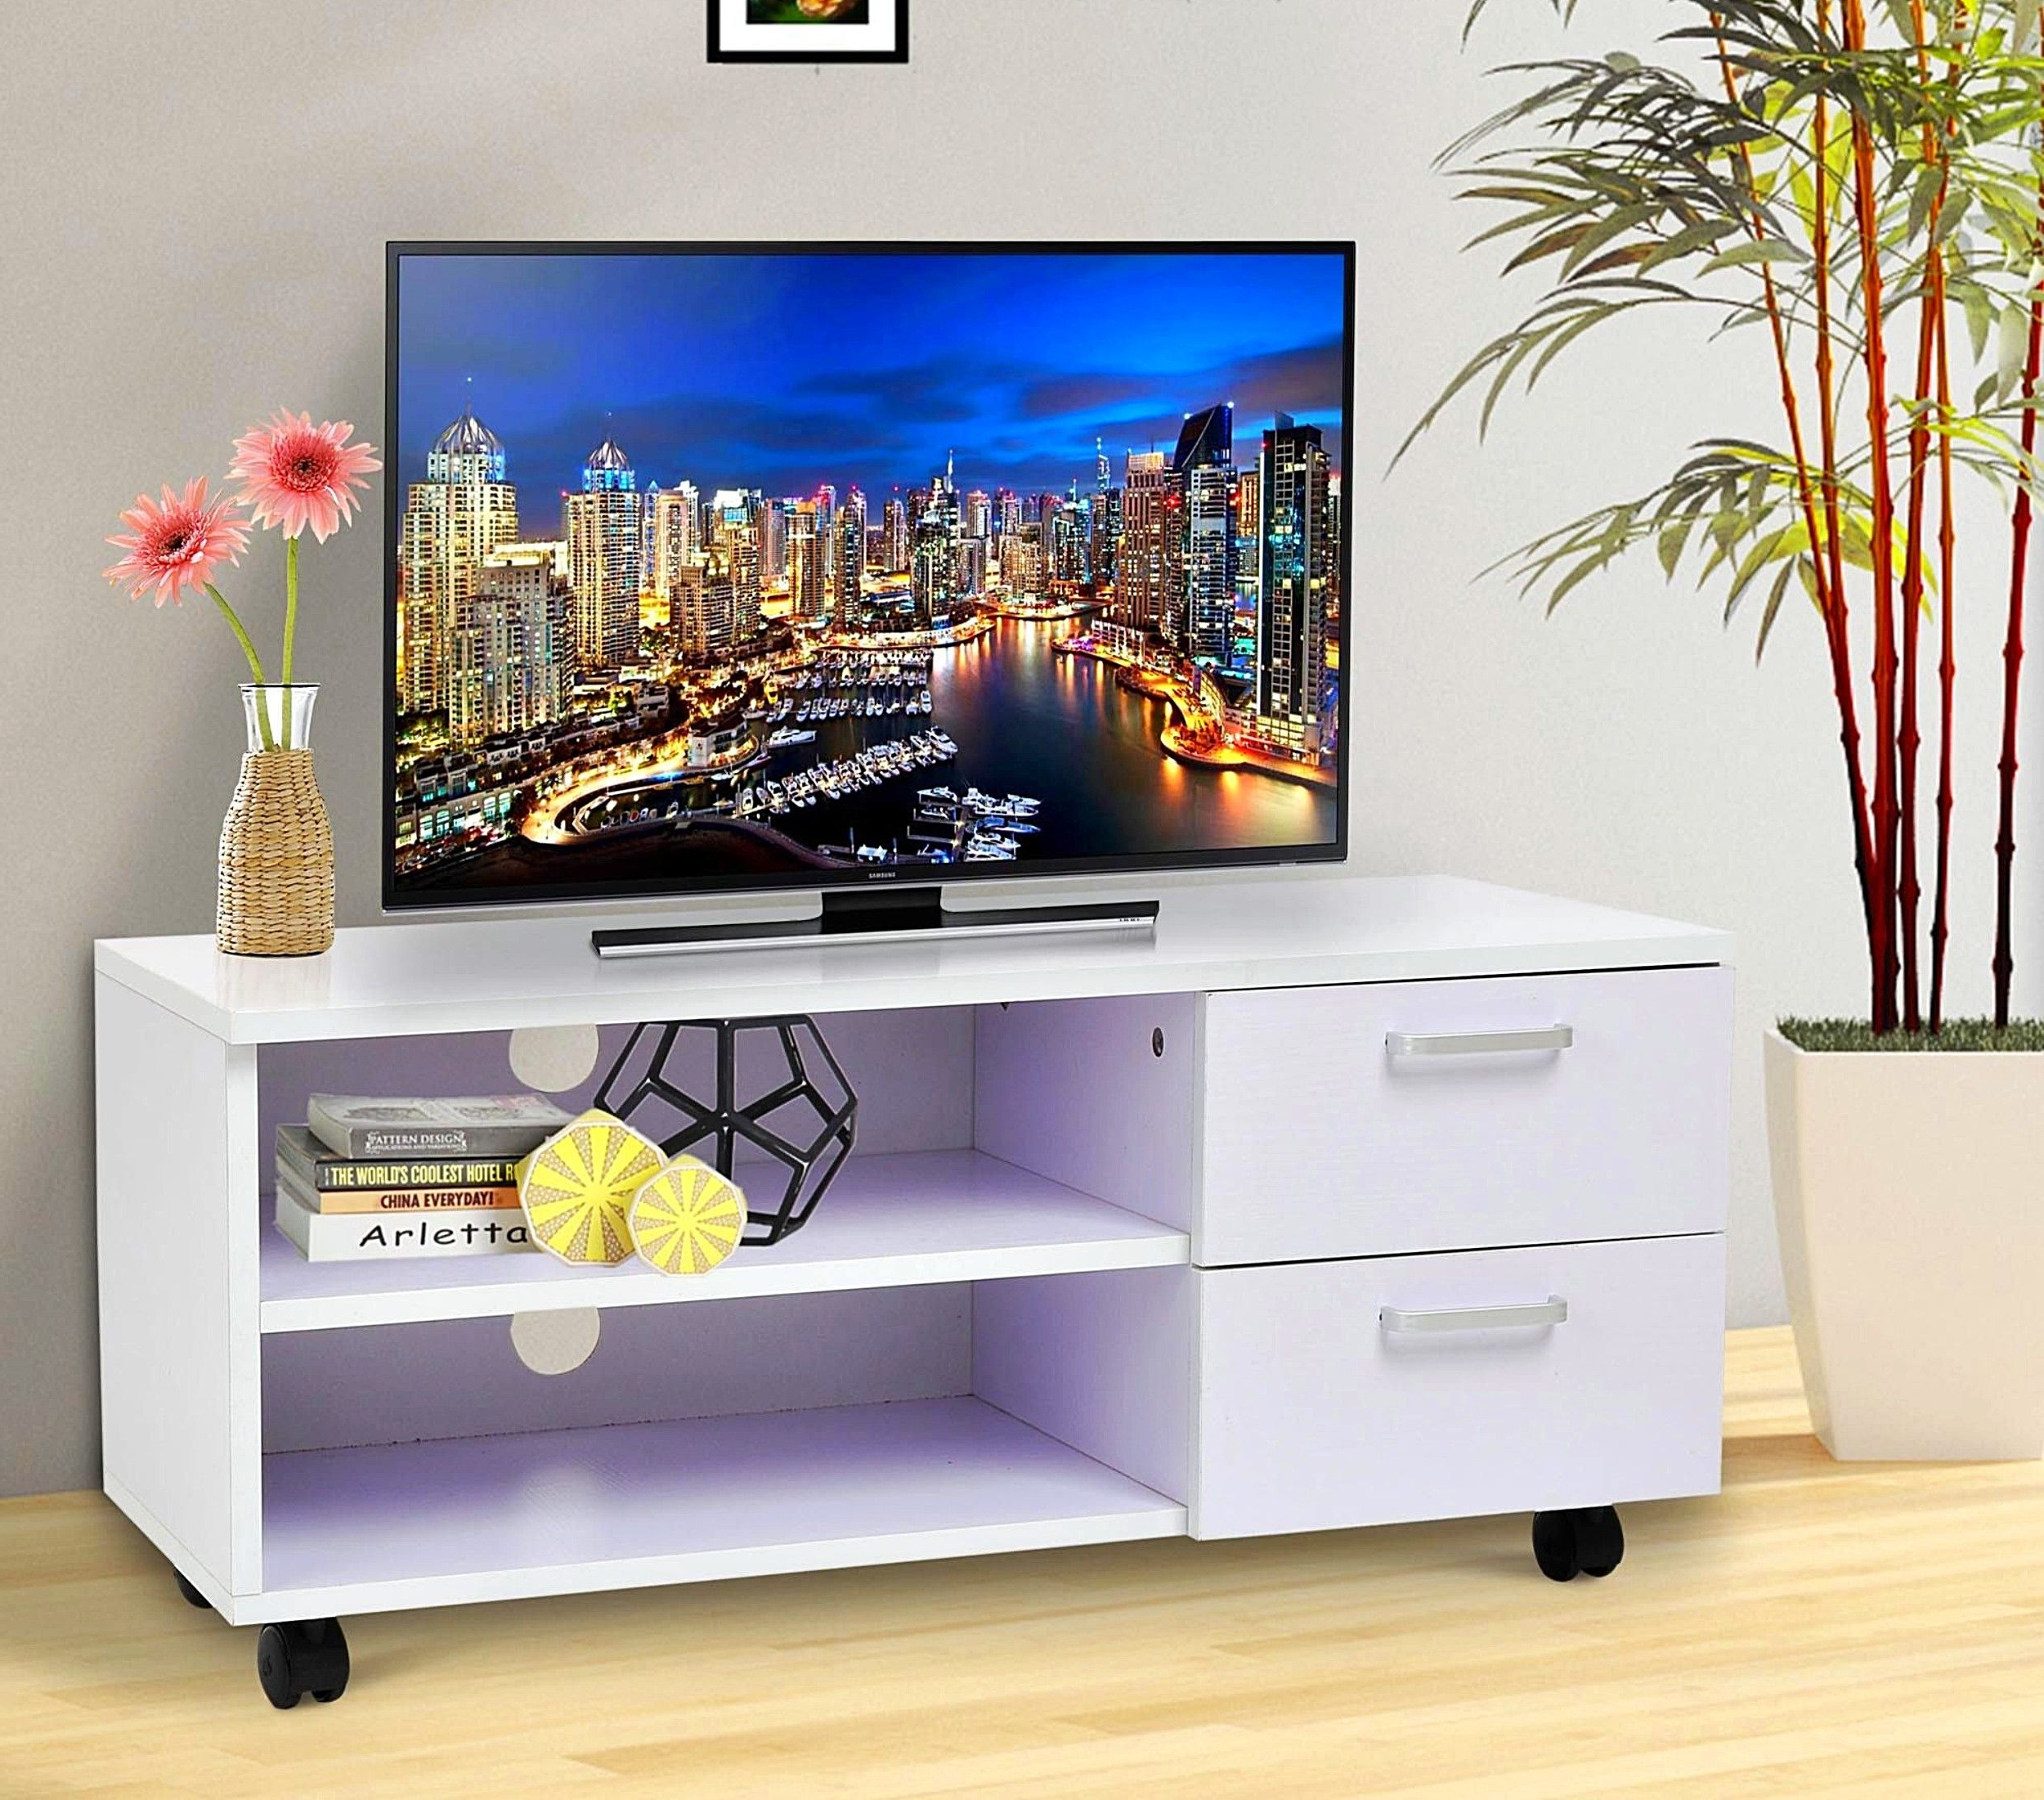 2018 Best Buy Tv Stands On Wheels Small Stand – Buyouapp For Small Tv Stands On Wheels (Gallery 11 of 20)